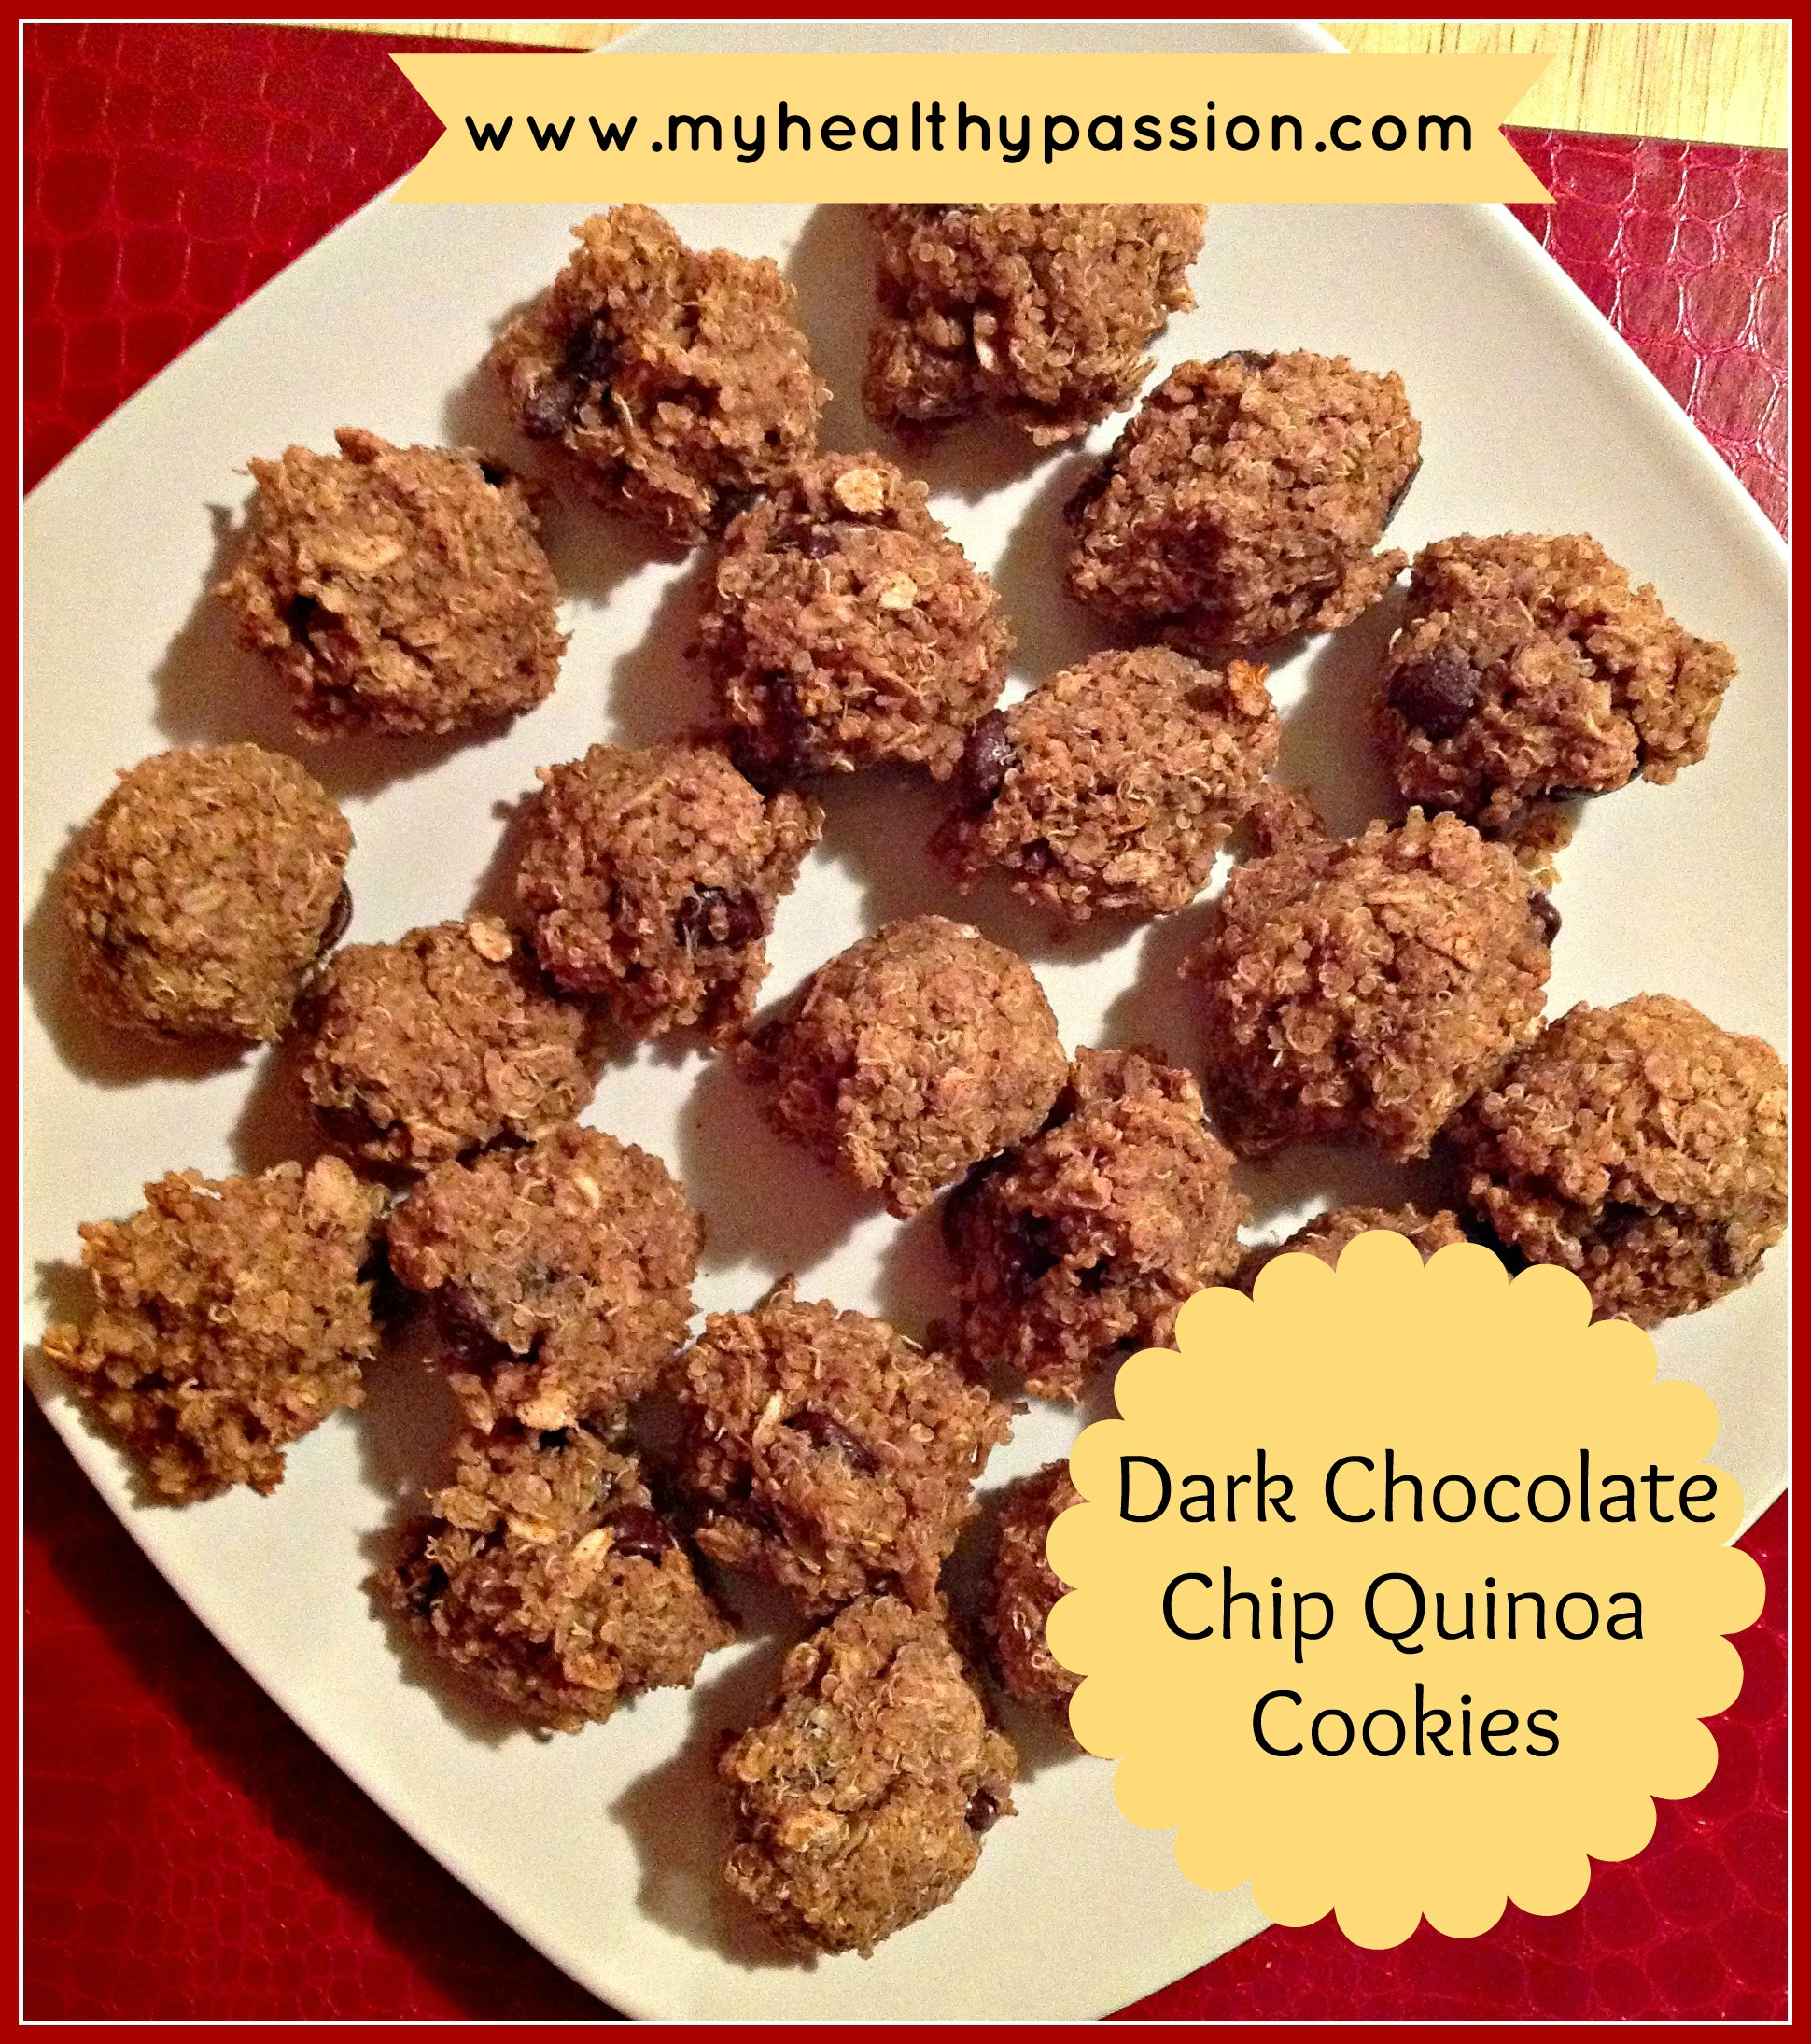 Dark Chocolate Chip Quinoa Cookies |